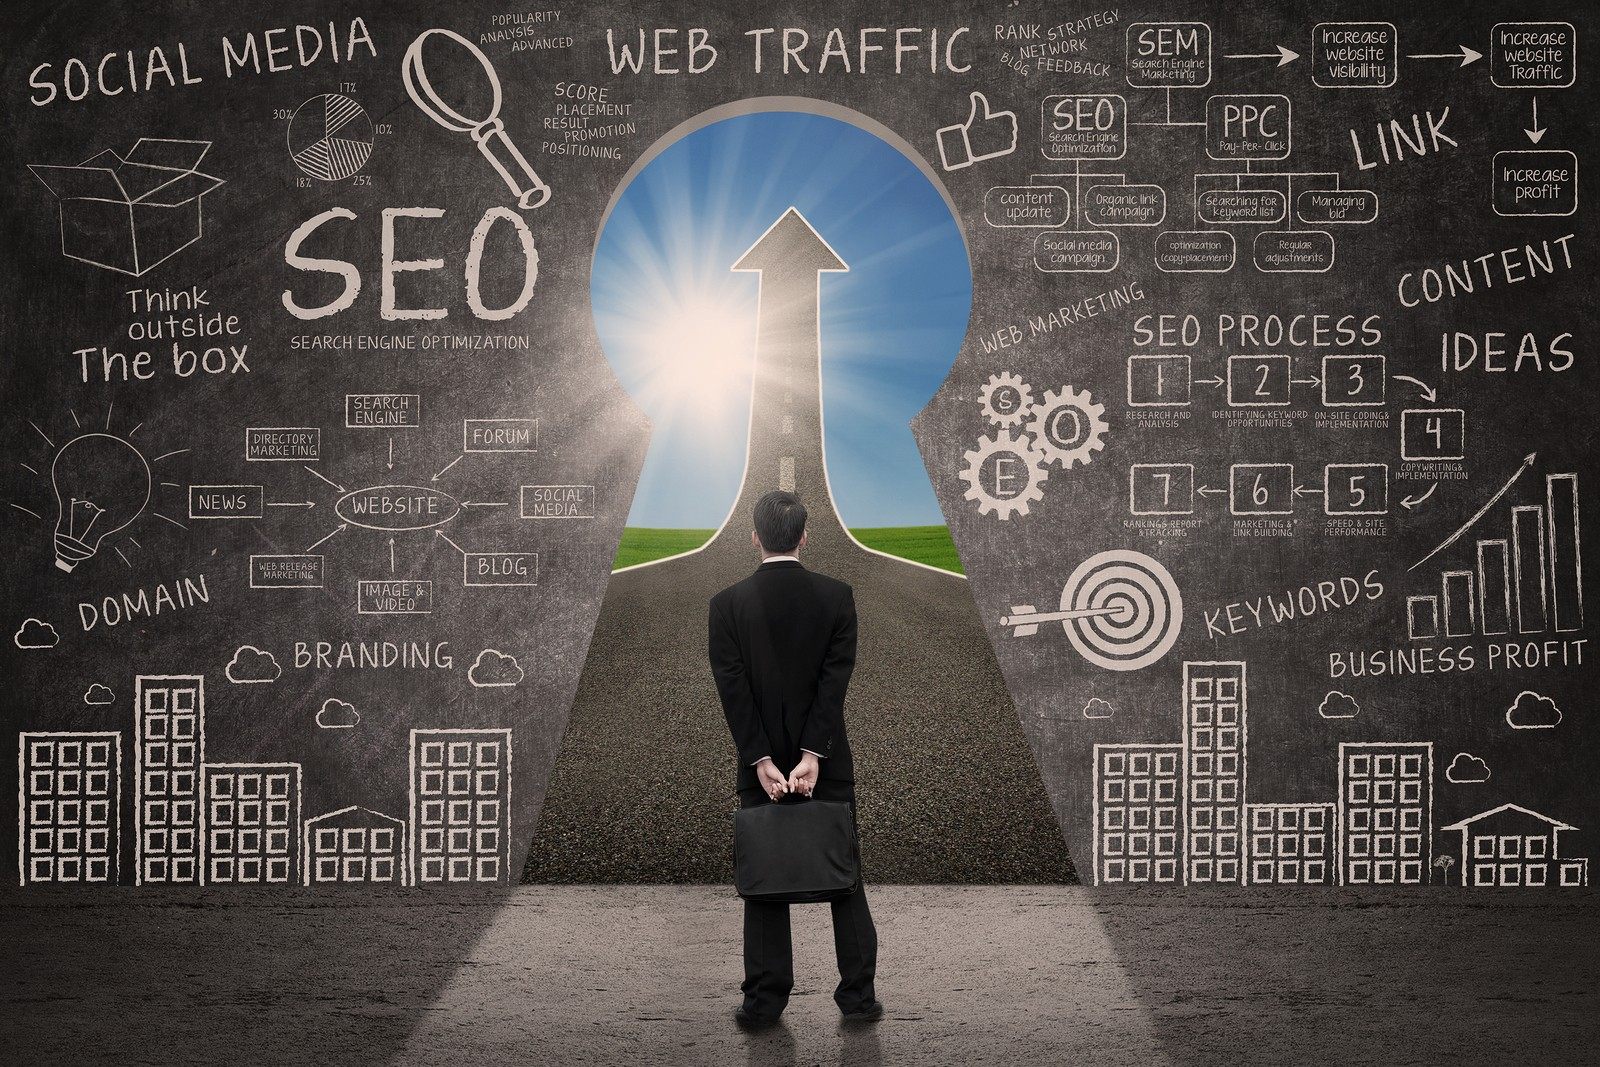 Why SEO Is Important To Include In Your Marketing Strategy